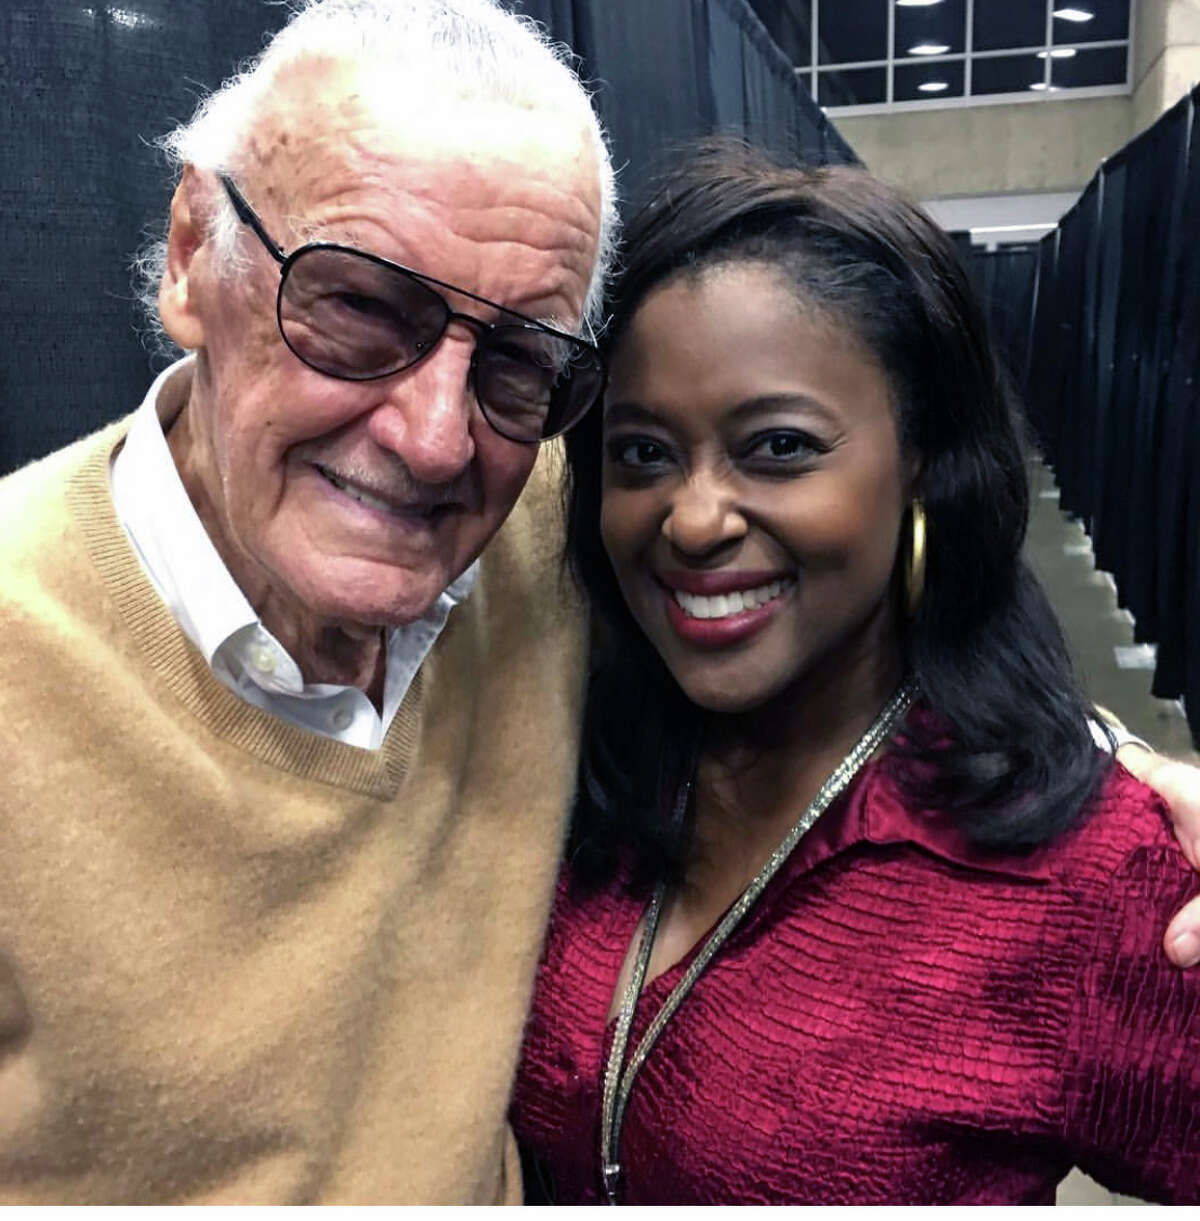 My biggest interview was with comic book creator, Stan Lee. Pictured: I am with the Marvel Comics man himself, Lee.